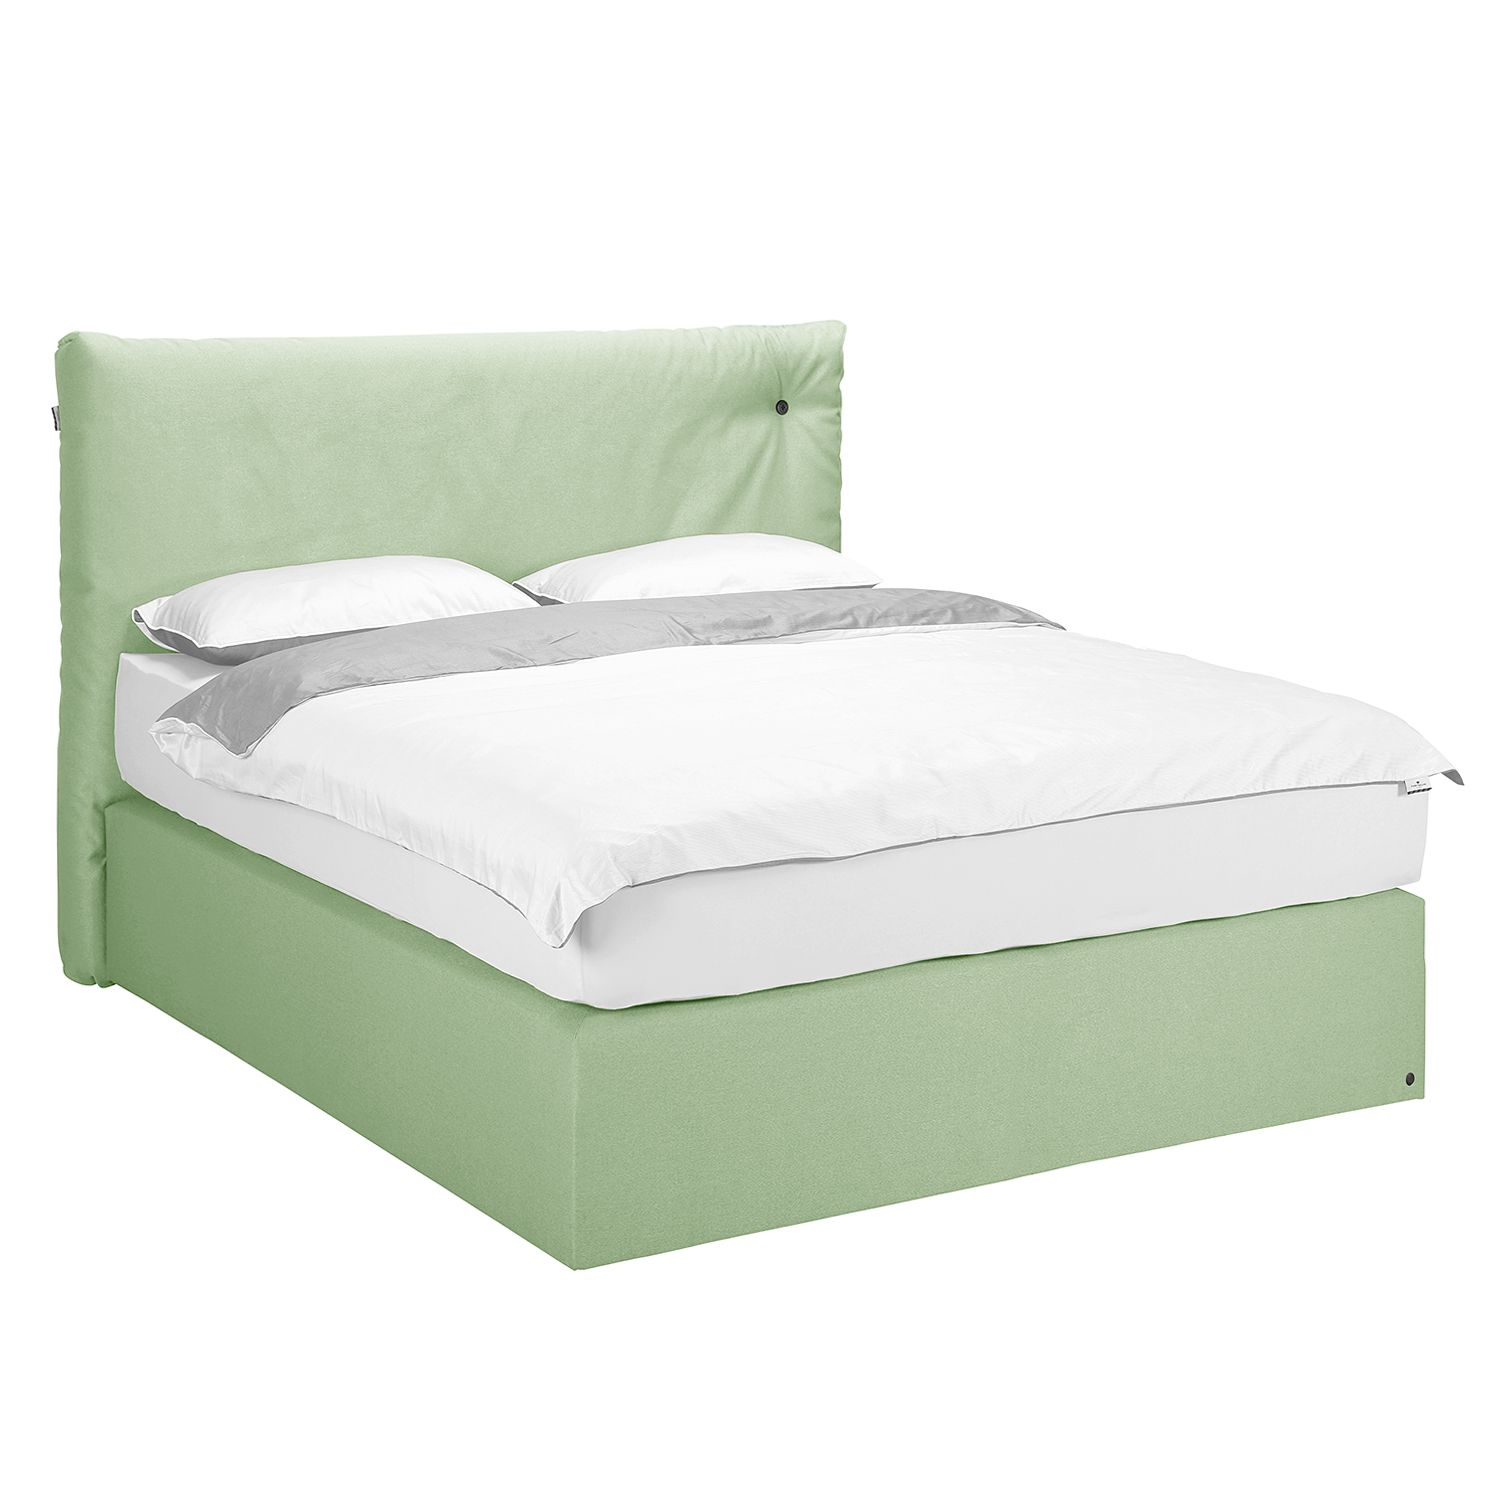 Ausziehbett Home24 Home24 Boxspringbett Soft Cloud Webstoff